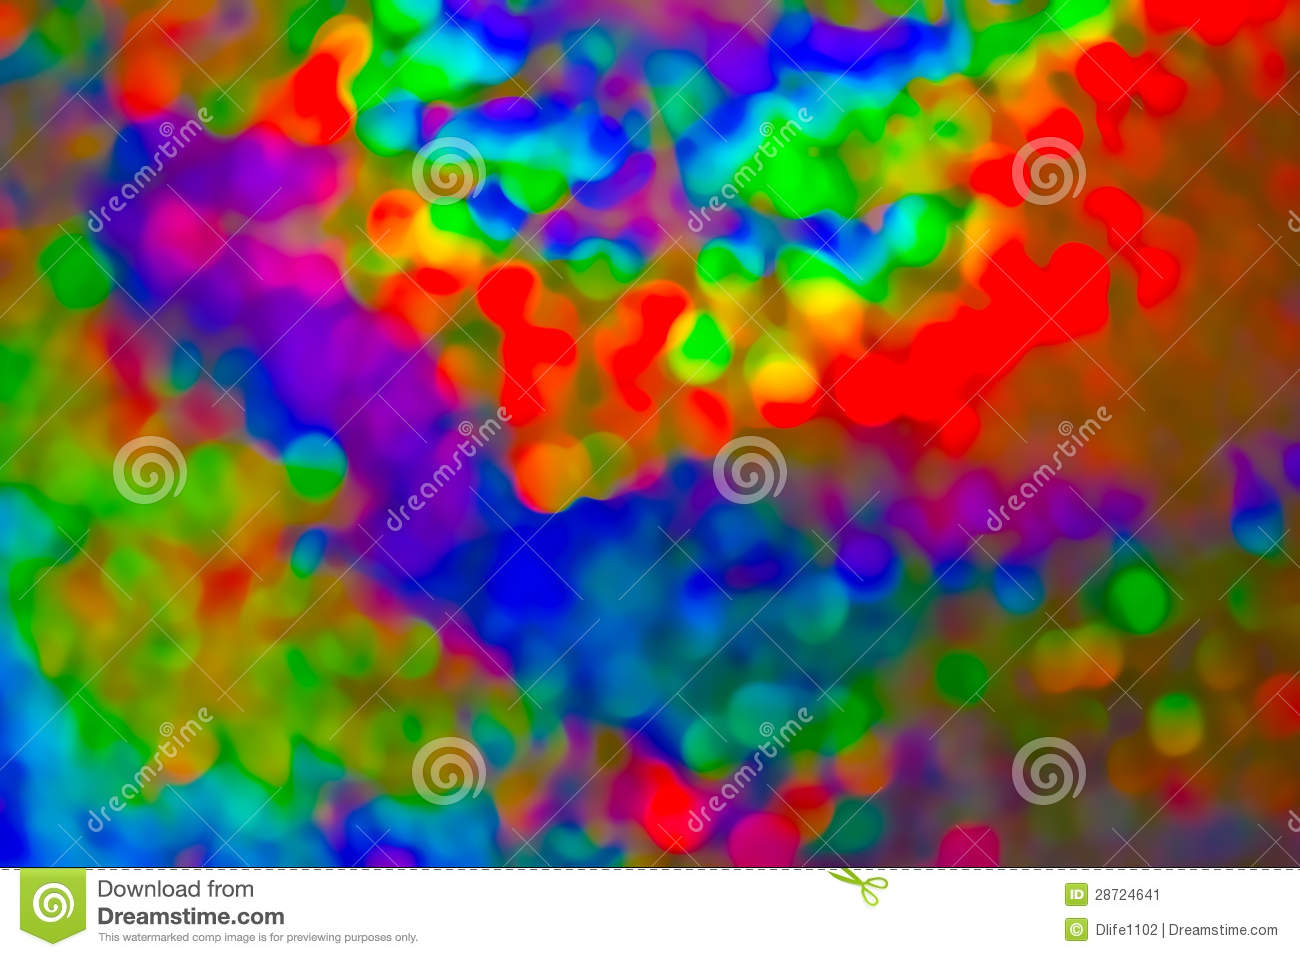 colorful abstract lights background psdgraphics colorful lights abstract background stock image 515